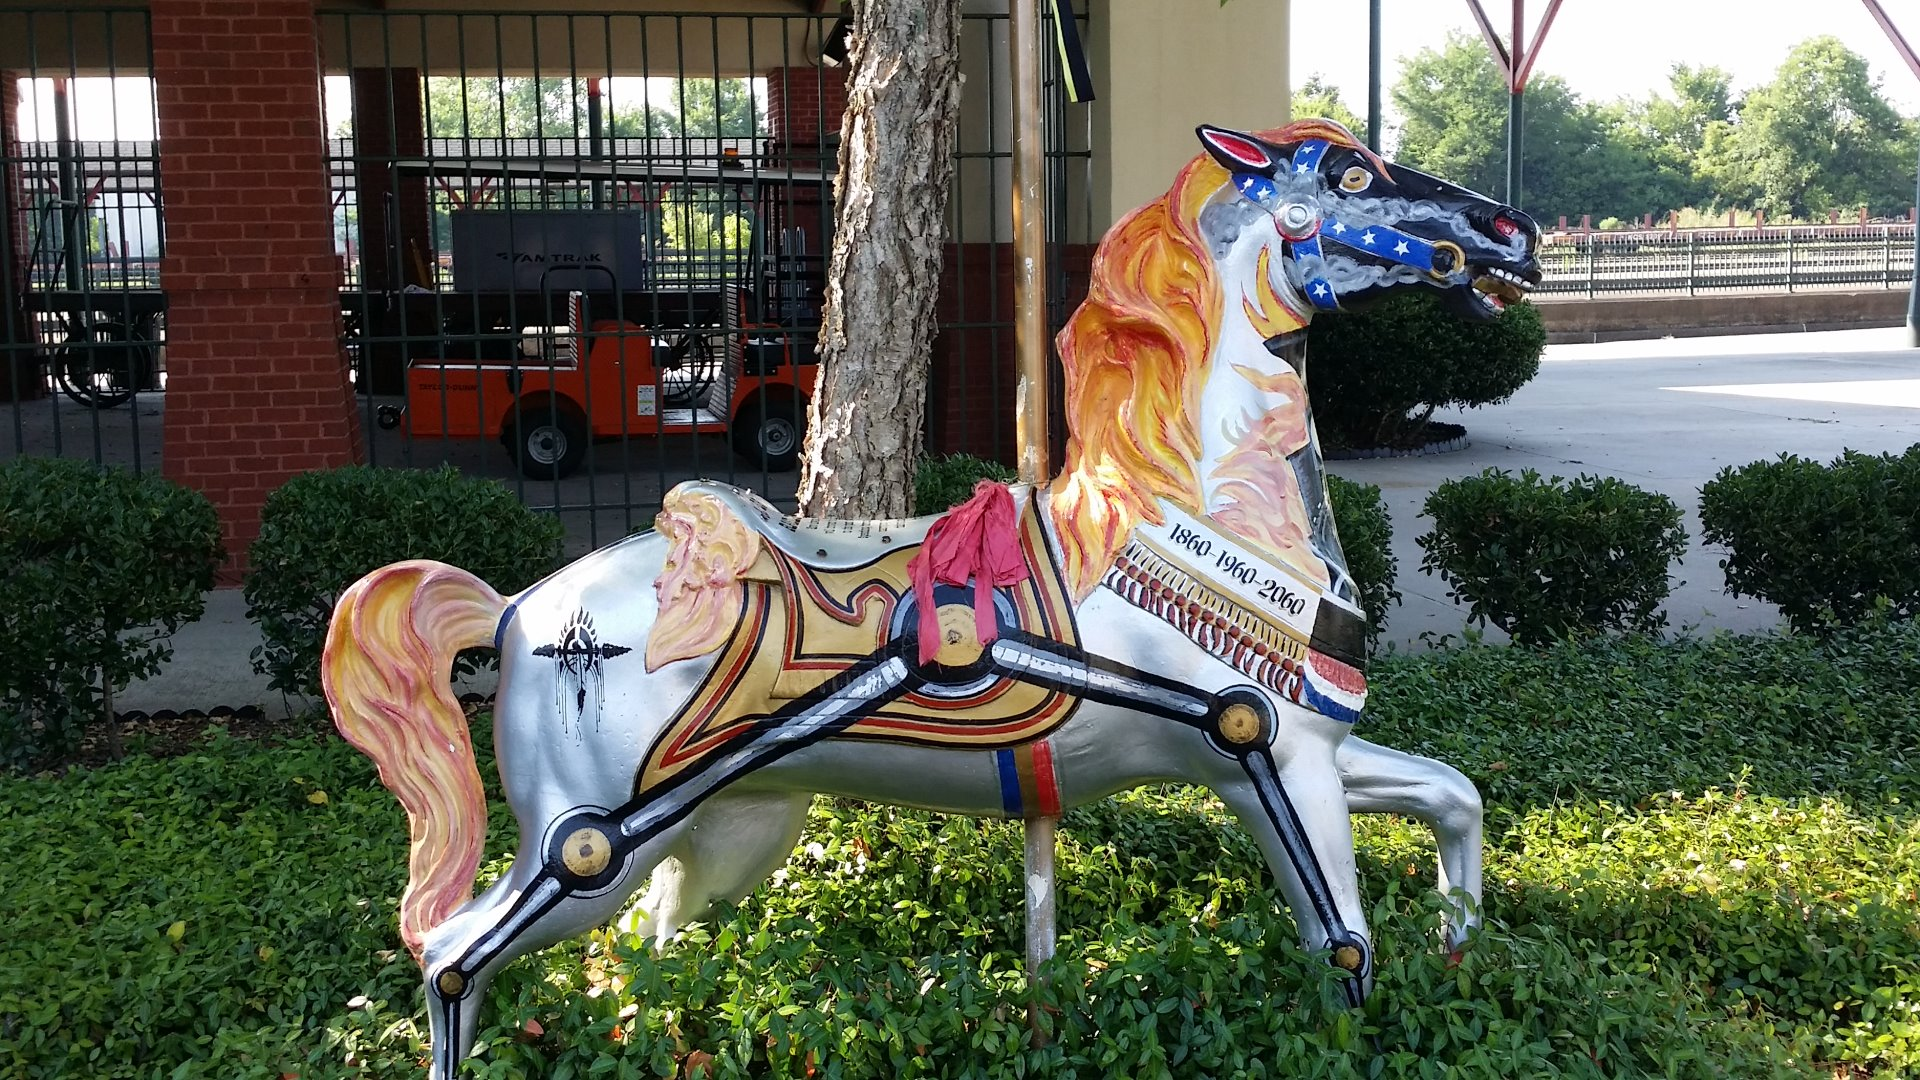 All around Meridian they had these horses.